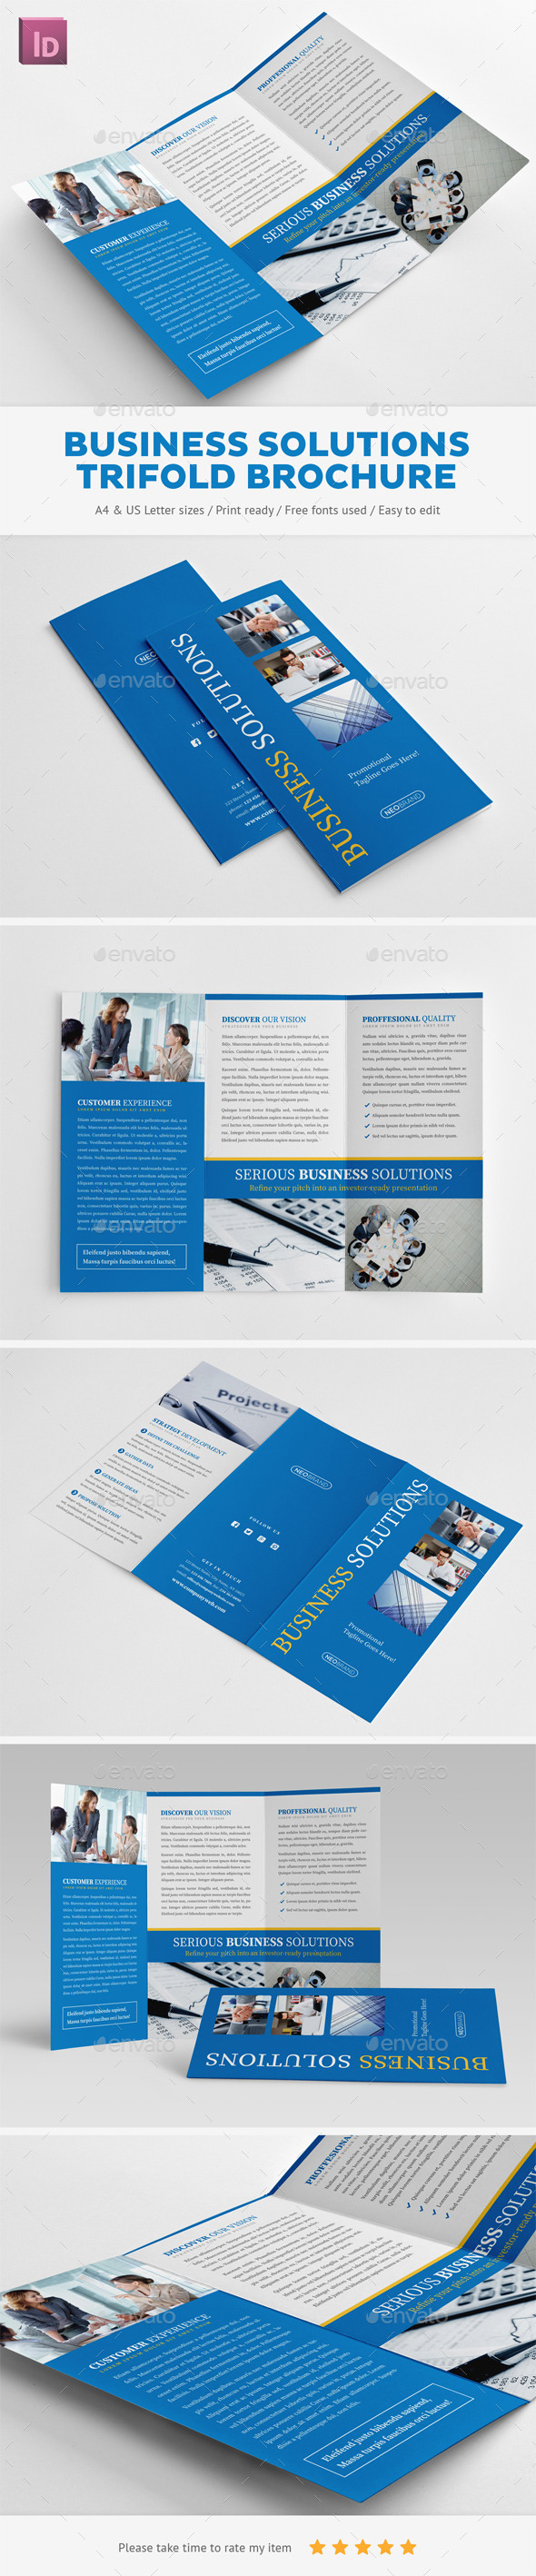 GraphicRiver Business Solutions Trifold Brochure 10981133